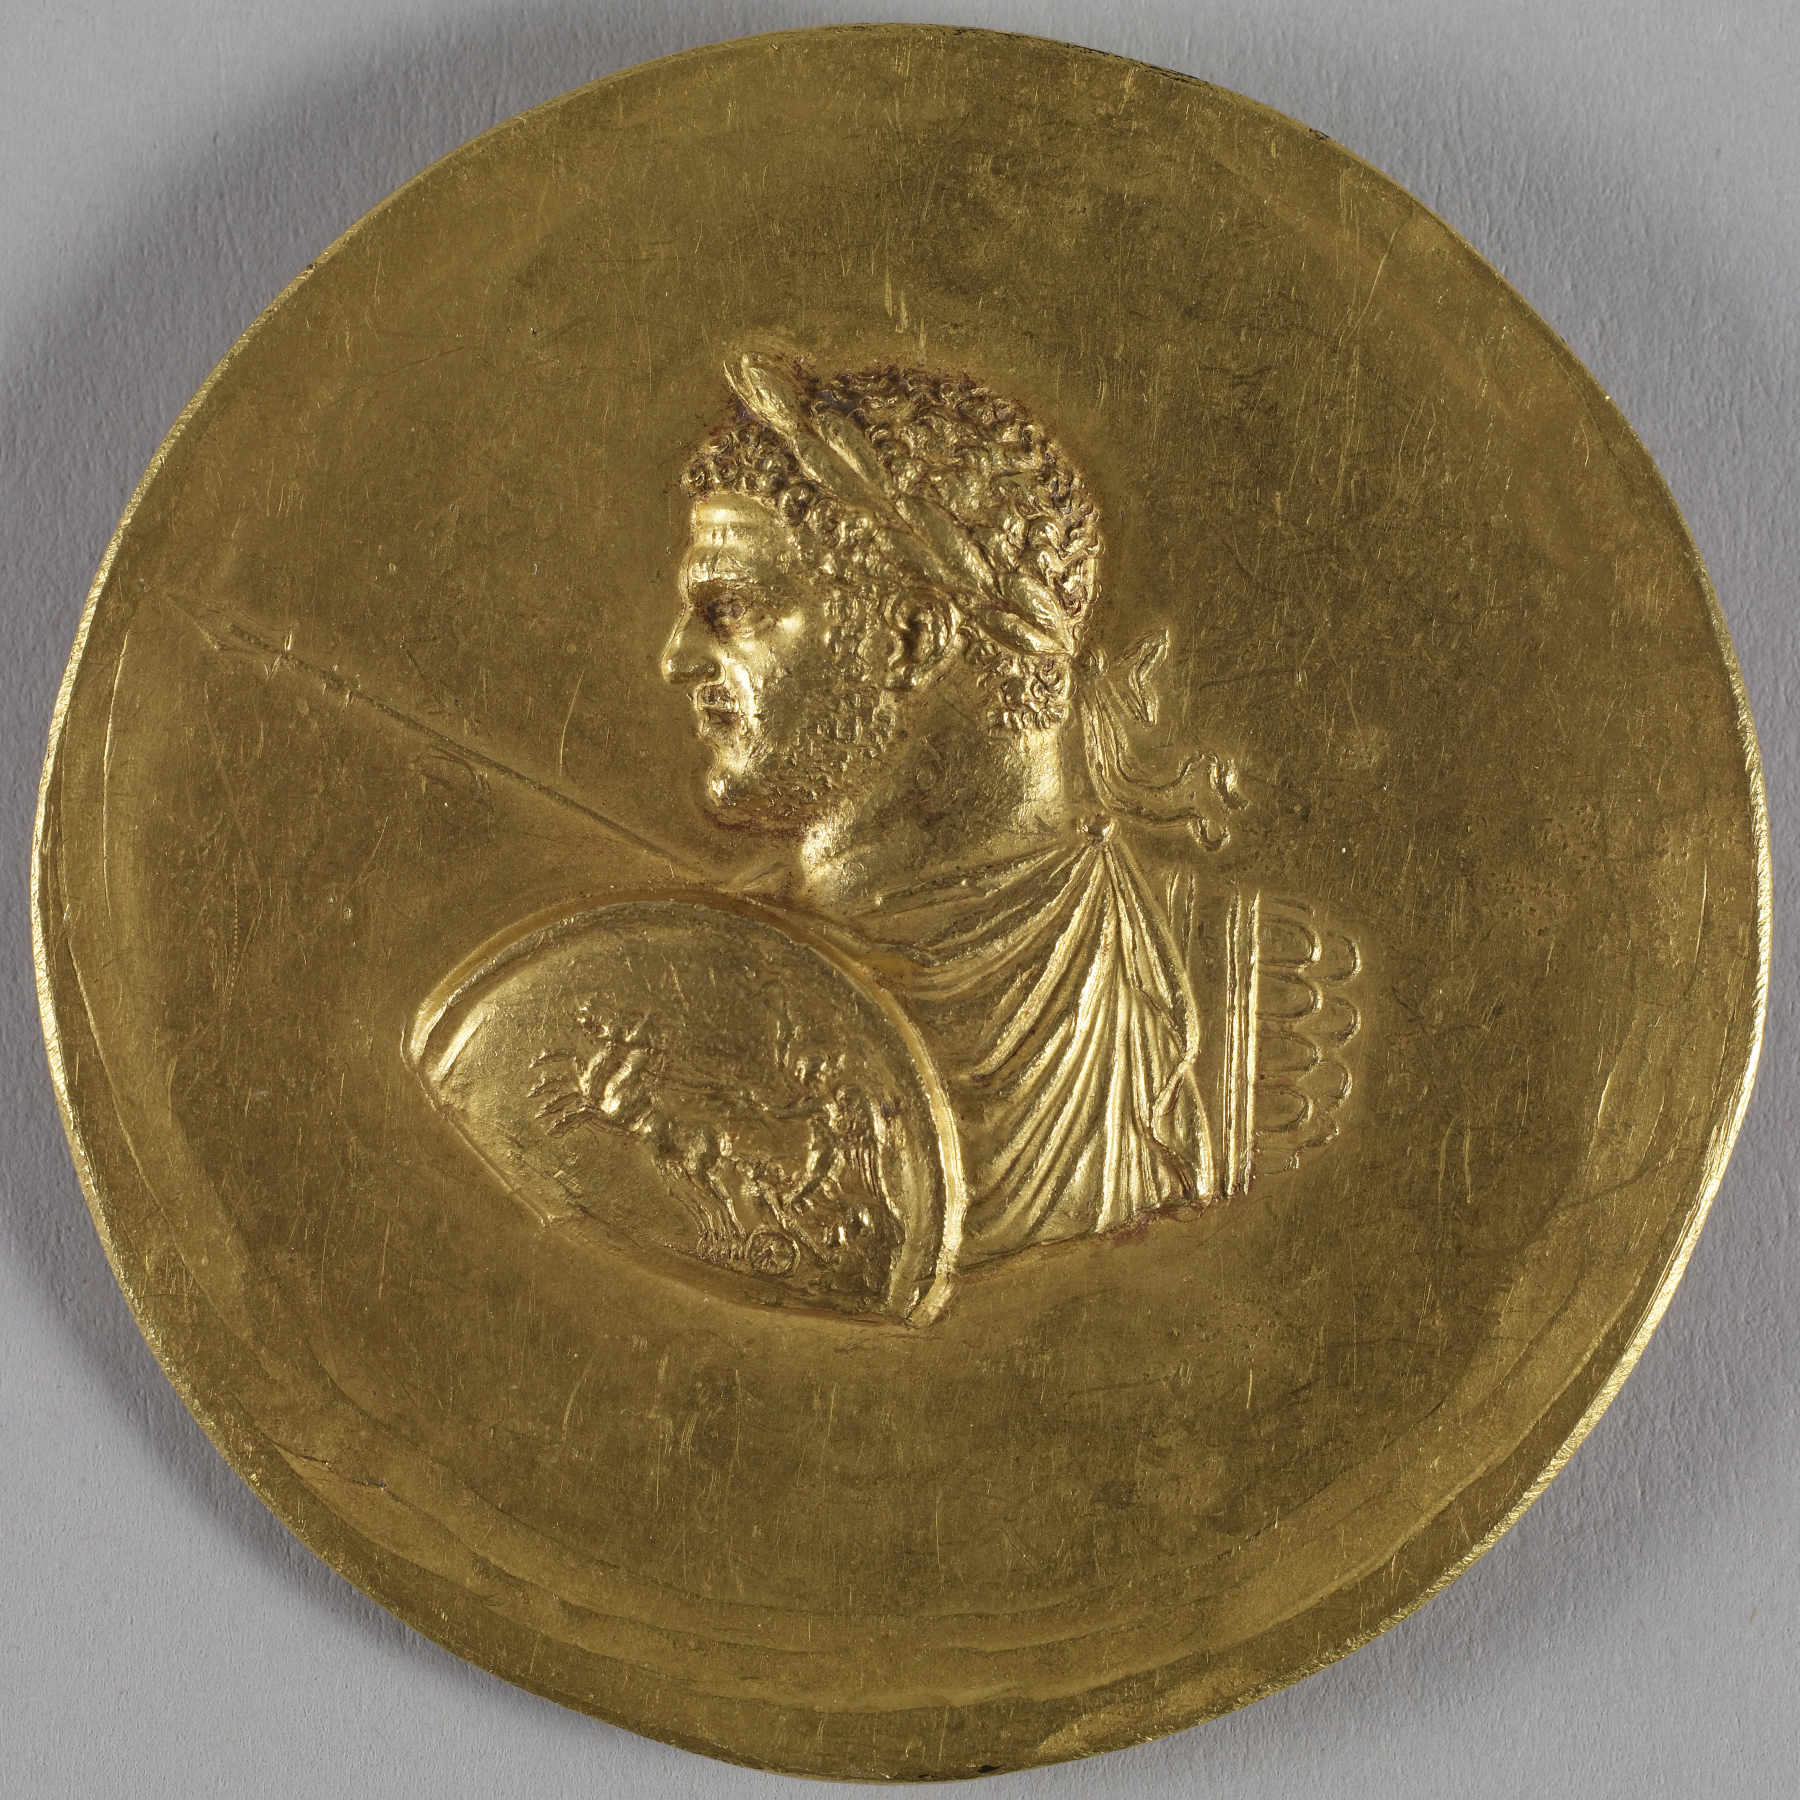 http://upload.wikimedia.org/wikipedia/commons/9/90/Roman_-_Medallion_with_Roman_Emperor_Caracalla_-_Walters_593_-_Obverse.jpg